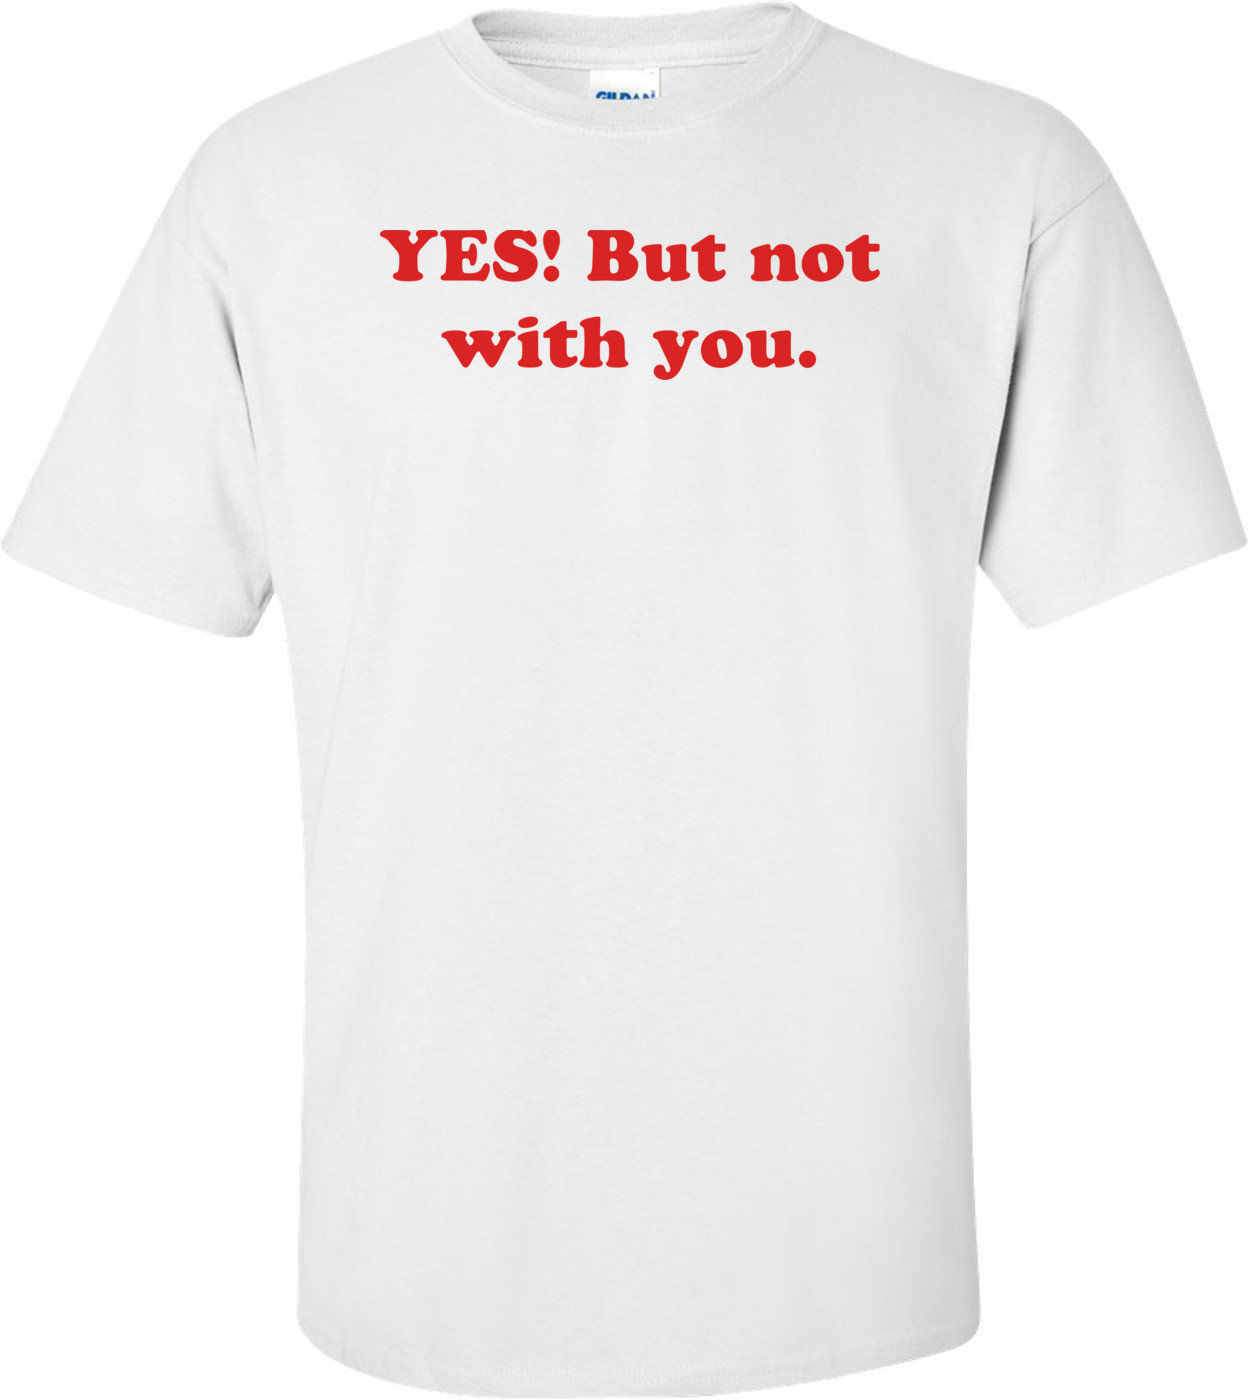 YES! But not with you. Shirt